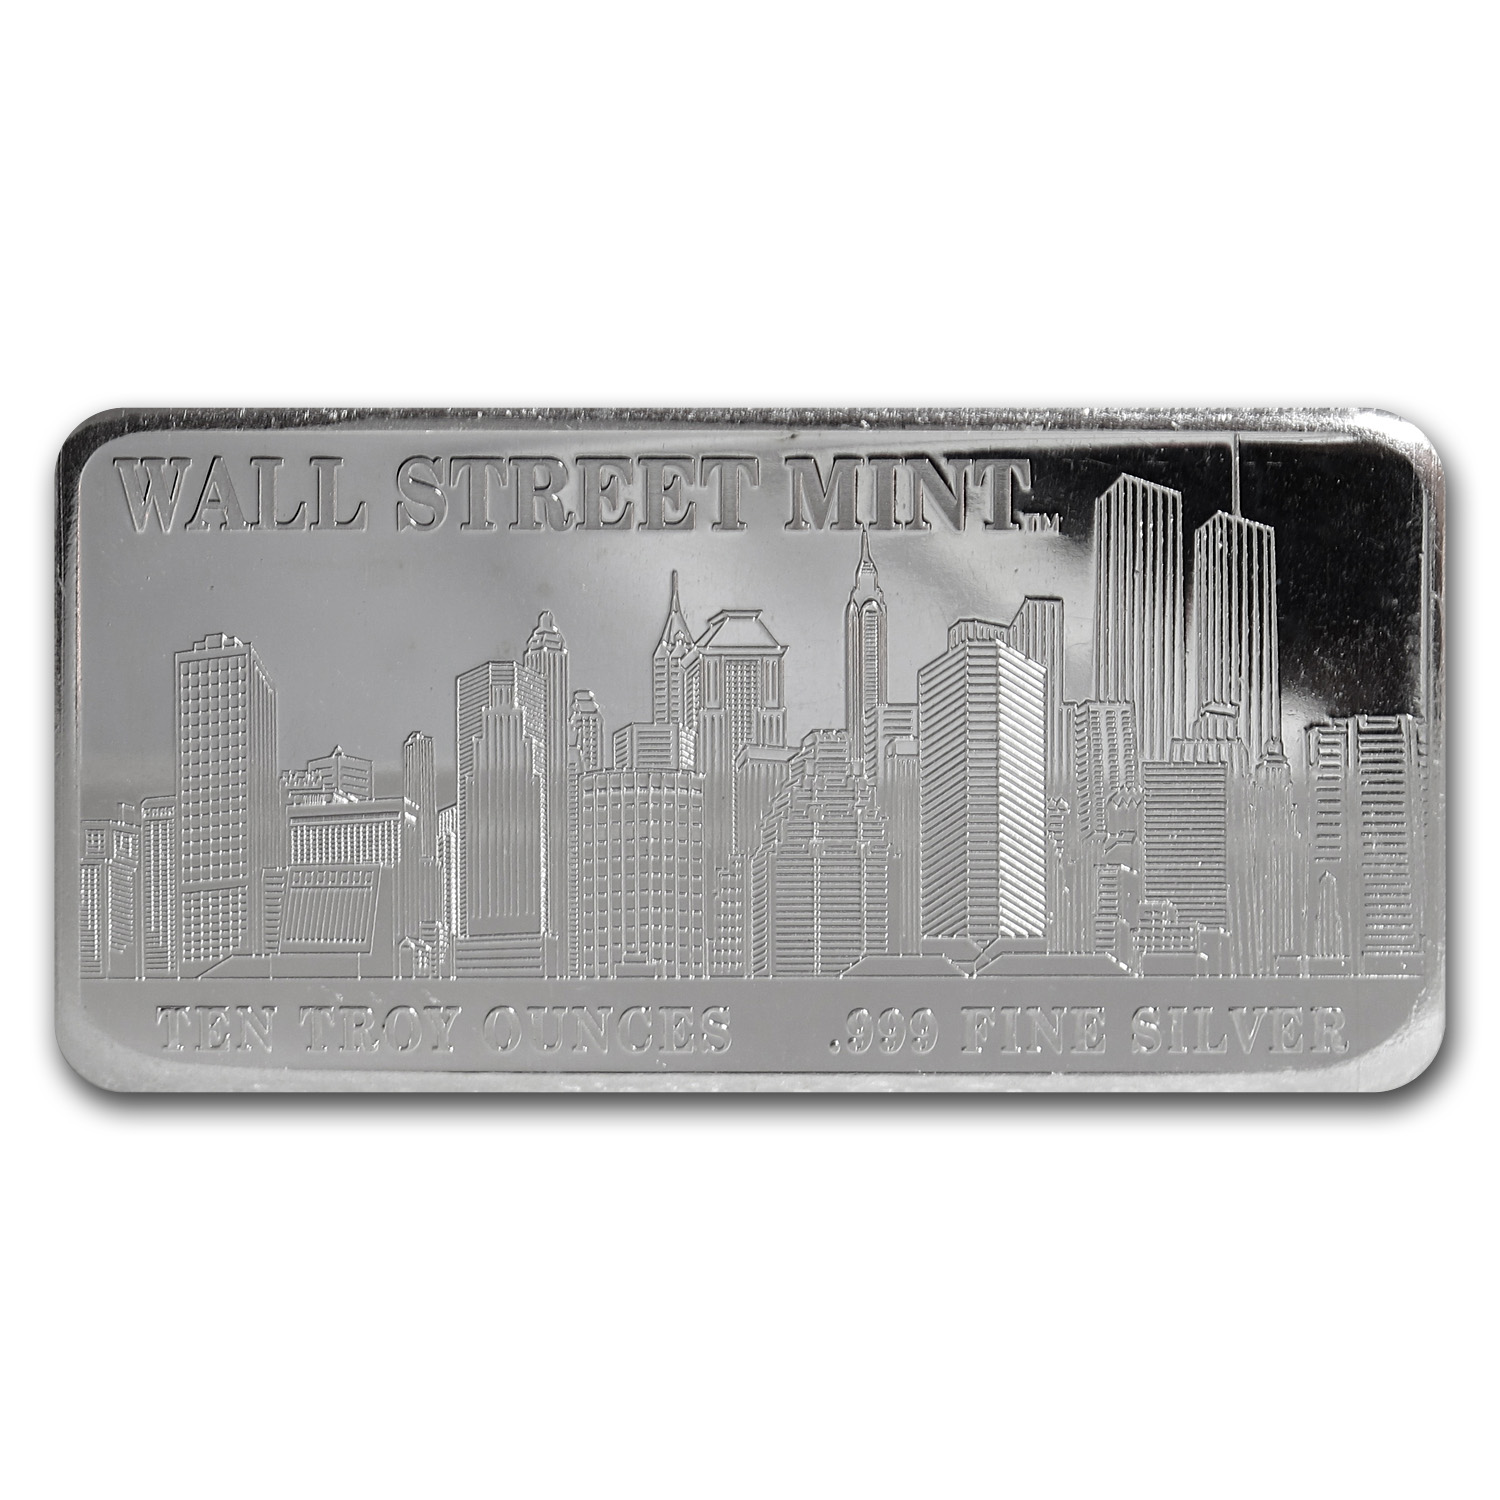 10 oz Silver Bars - Wall Street Mint (Type 1)